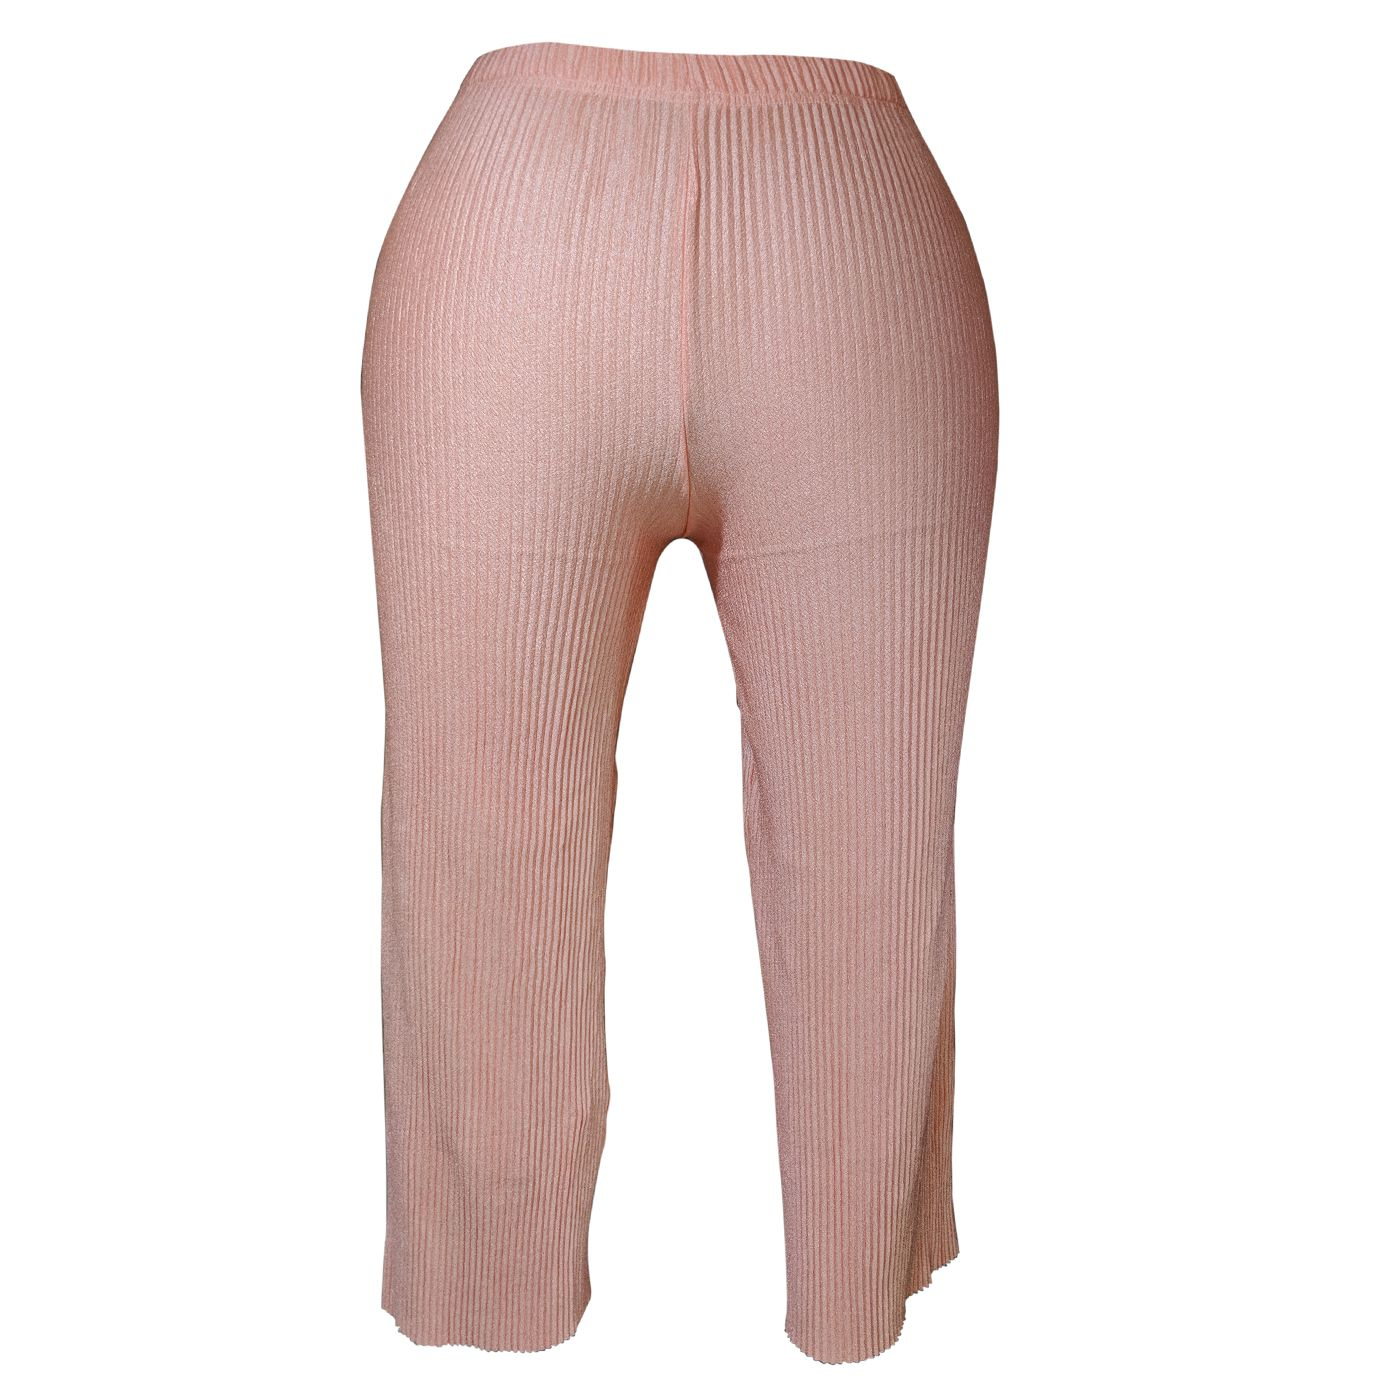 Glosbe Synthetic Jeggings - Pink